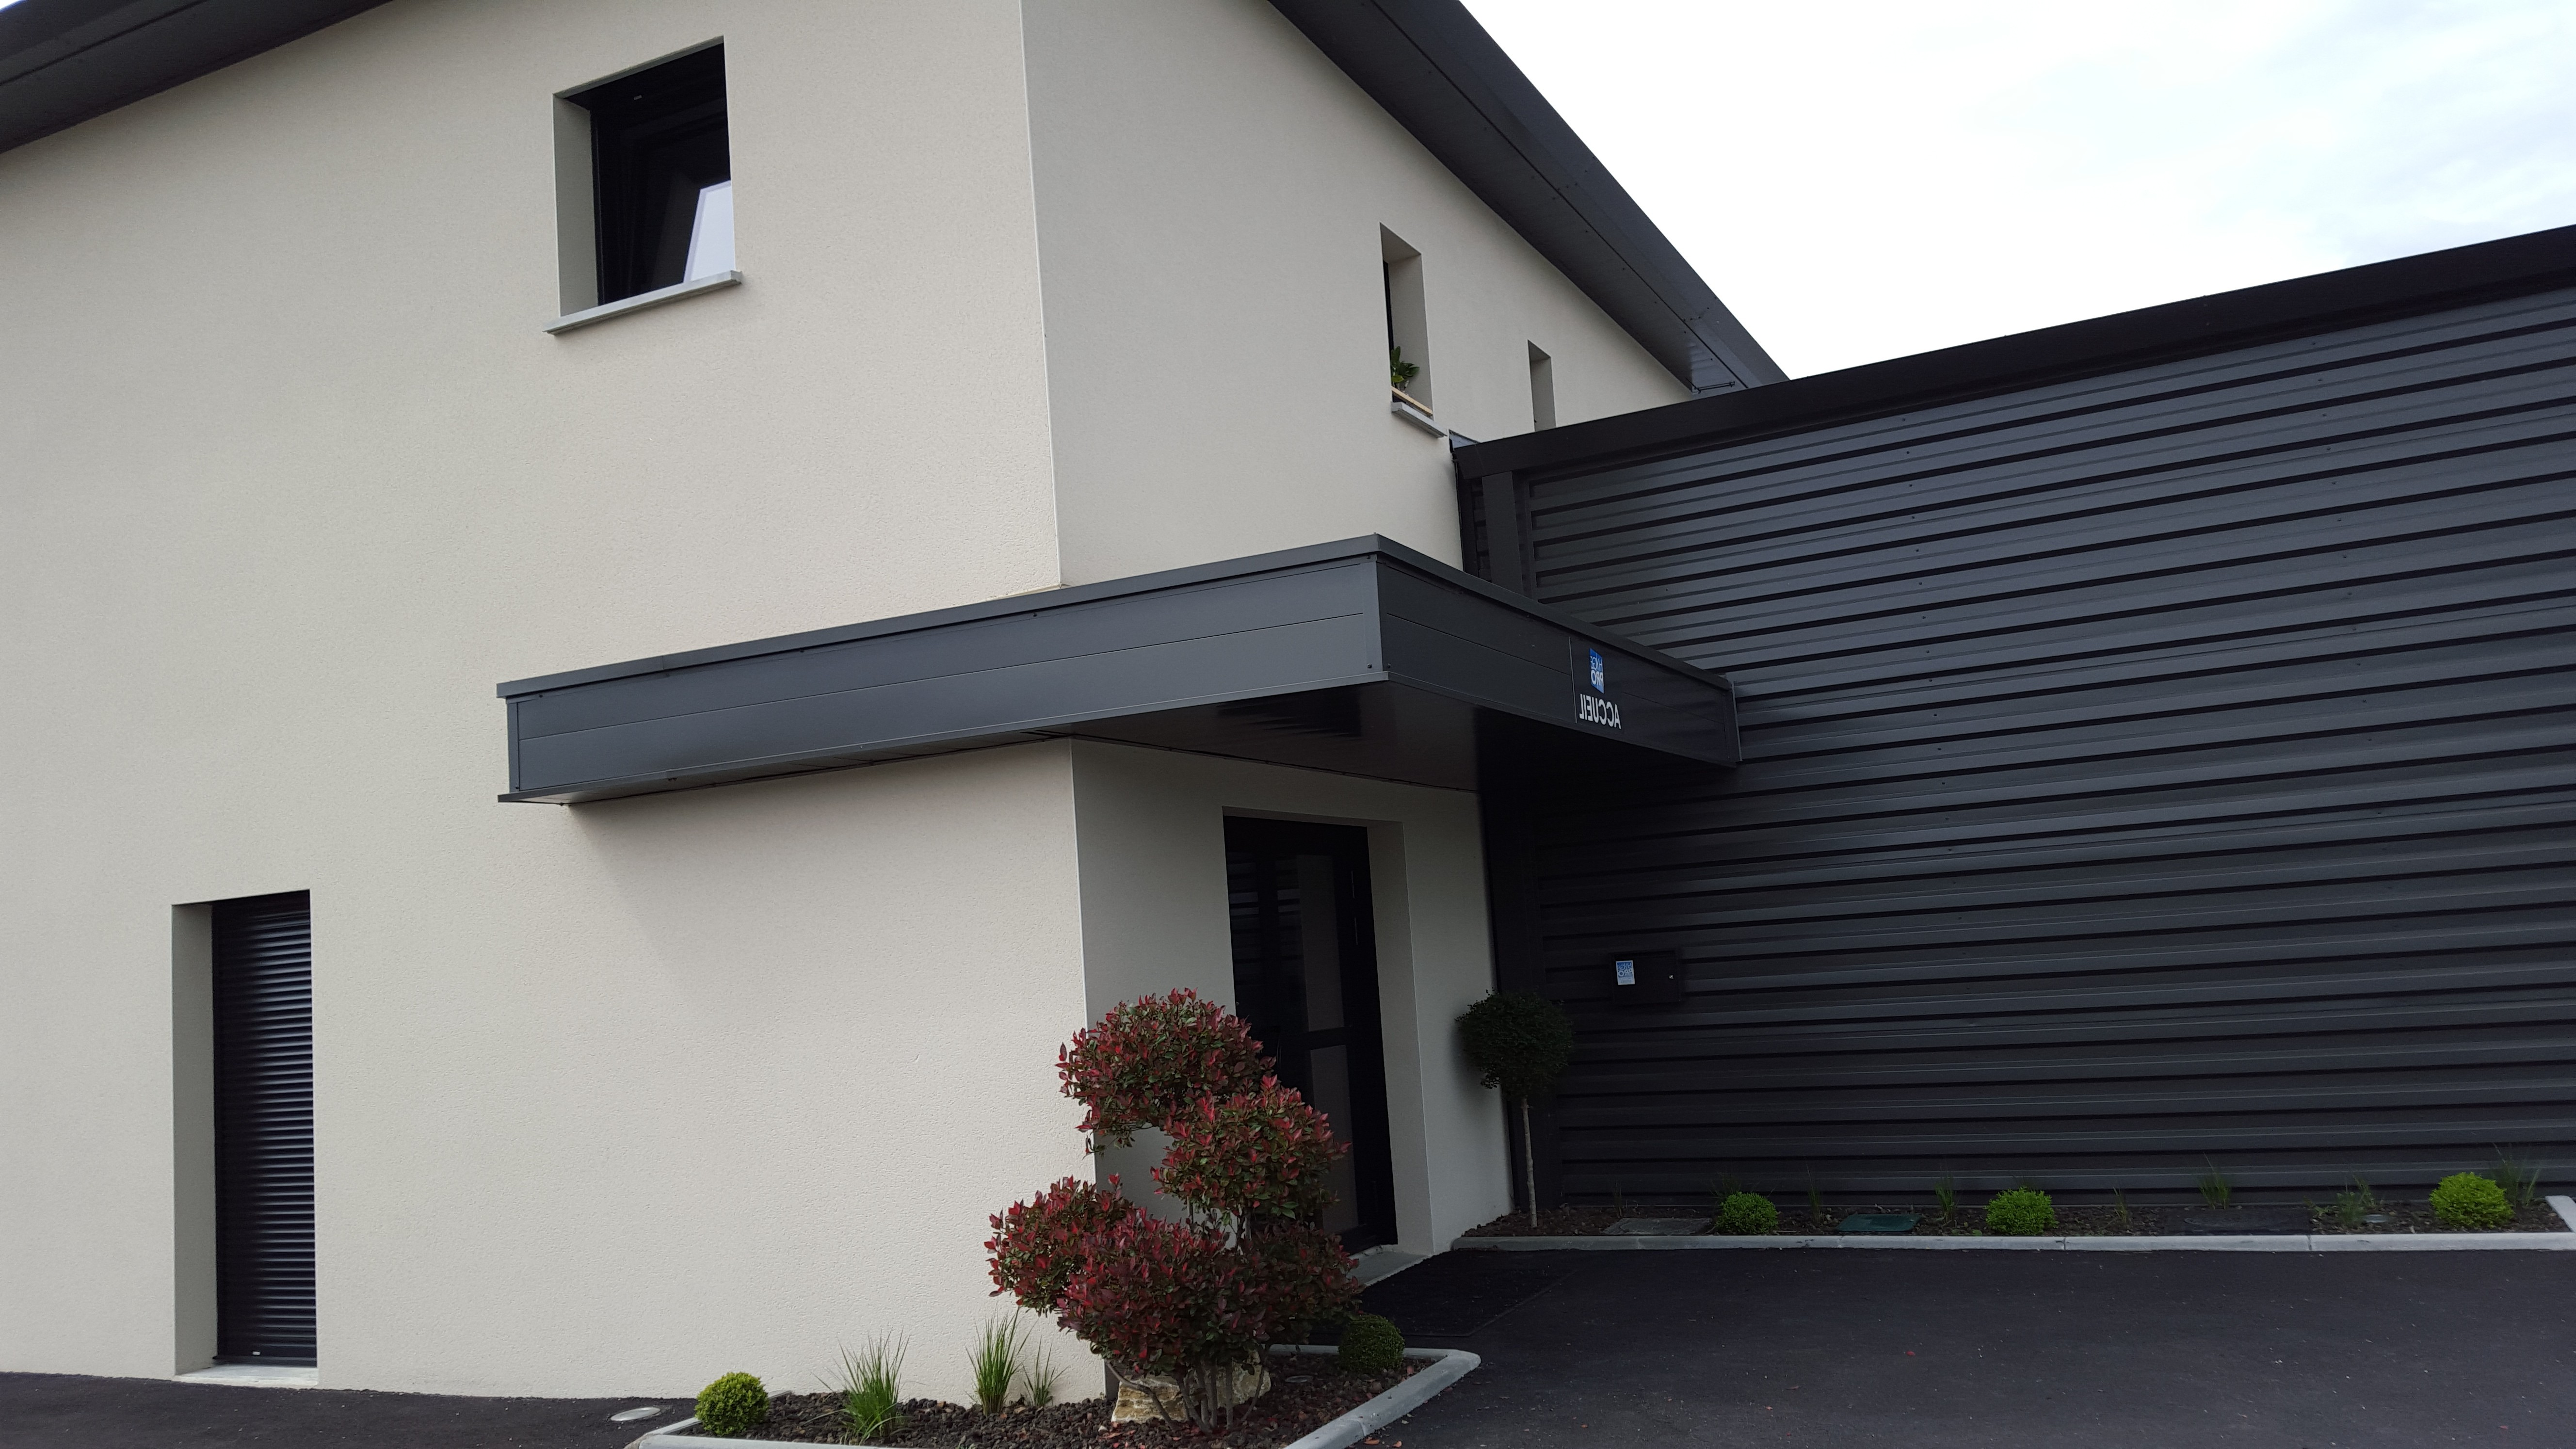 B timent industriel belcastro construction for Cout construction batiment industriel